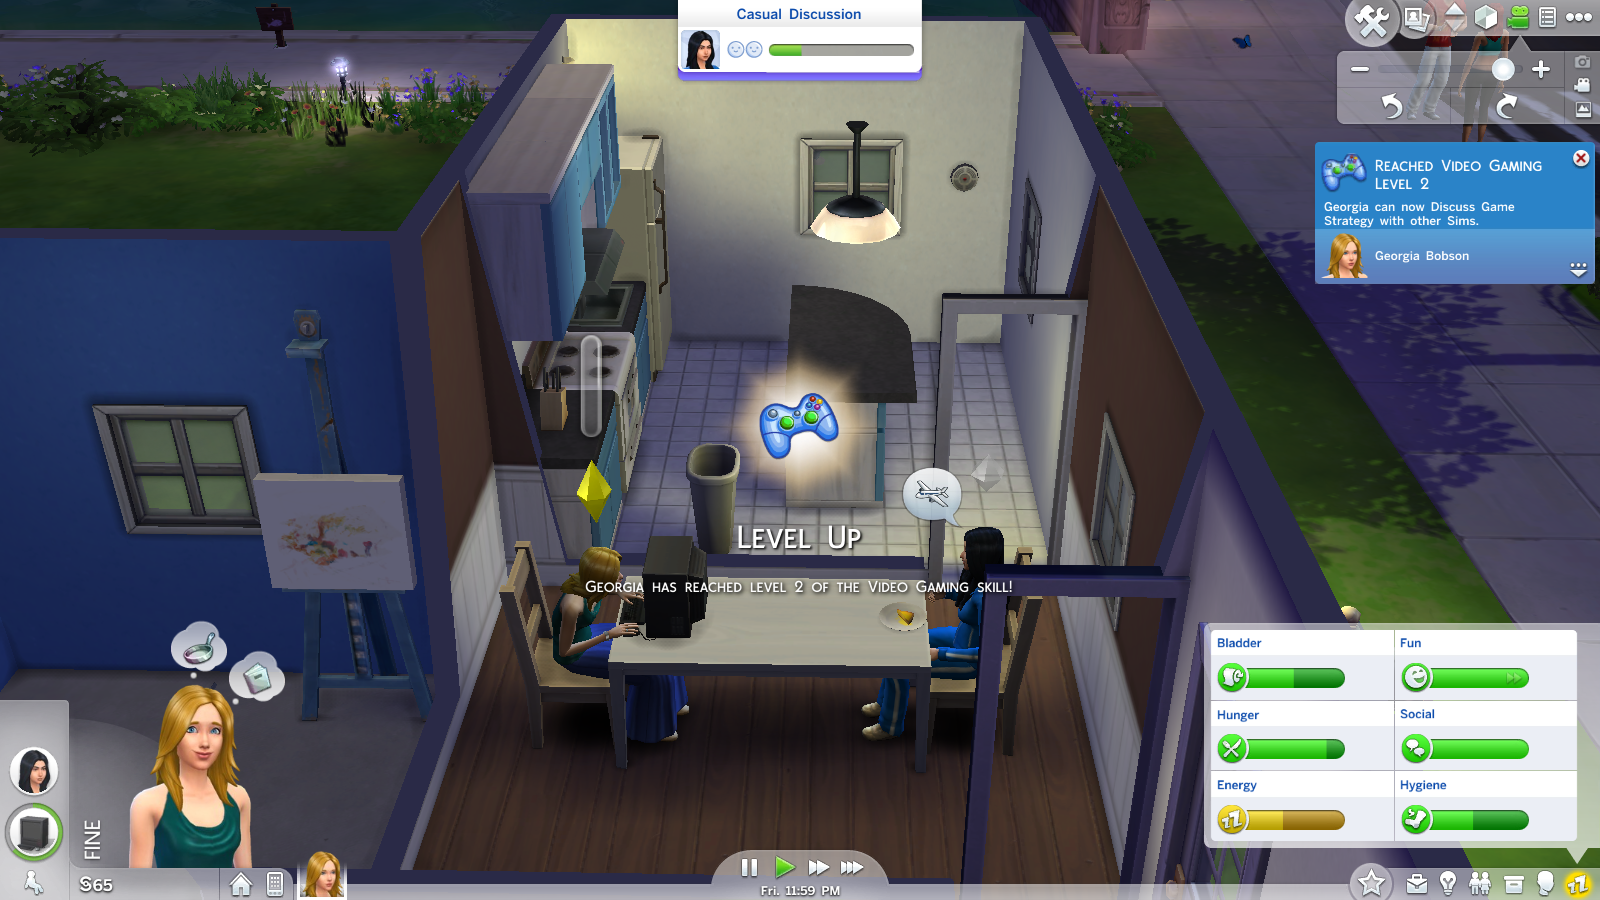 The Sims 4 multi-tasking doing two things at once